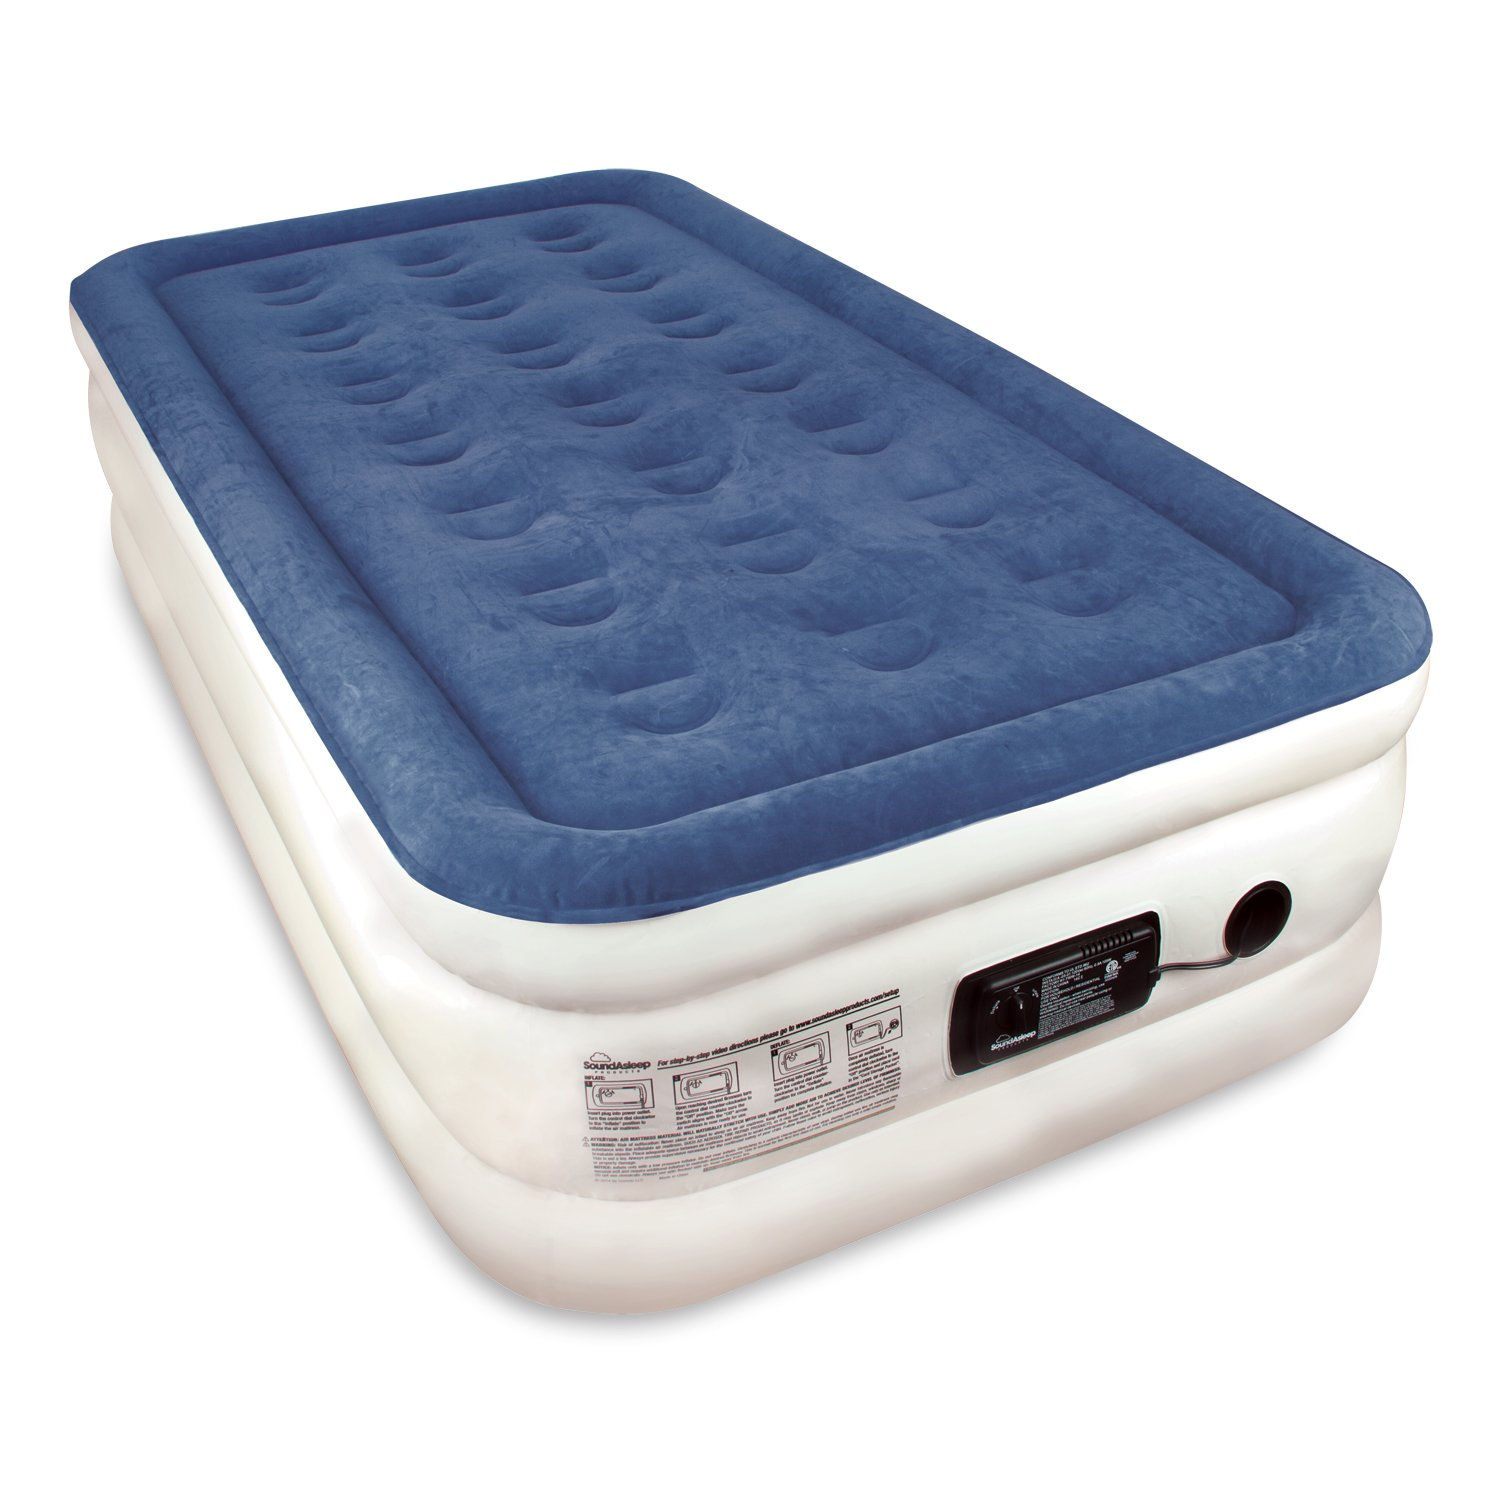 twin sized air mattress Amazon.com: SoundAsleep Raised Twin Size Premium Air Mattress  twin sized air mattress